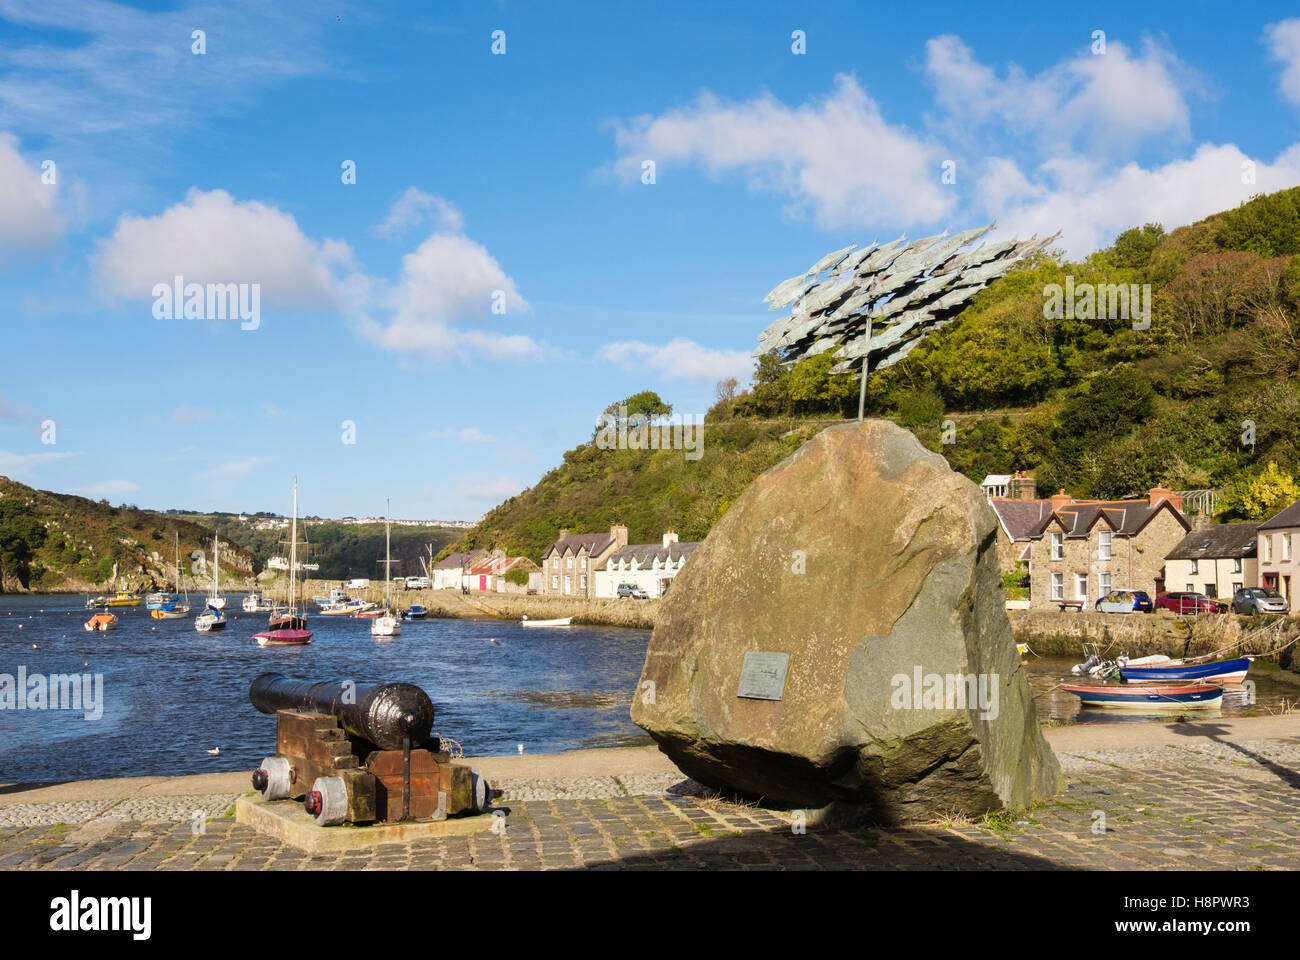 Fishguard Herrings sculpture beside the old port. Lower Fishguard (Abergwaun), Pembrokeshire, South Wales, UK, Britain - Stock Image